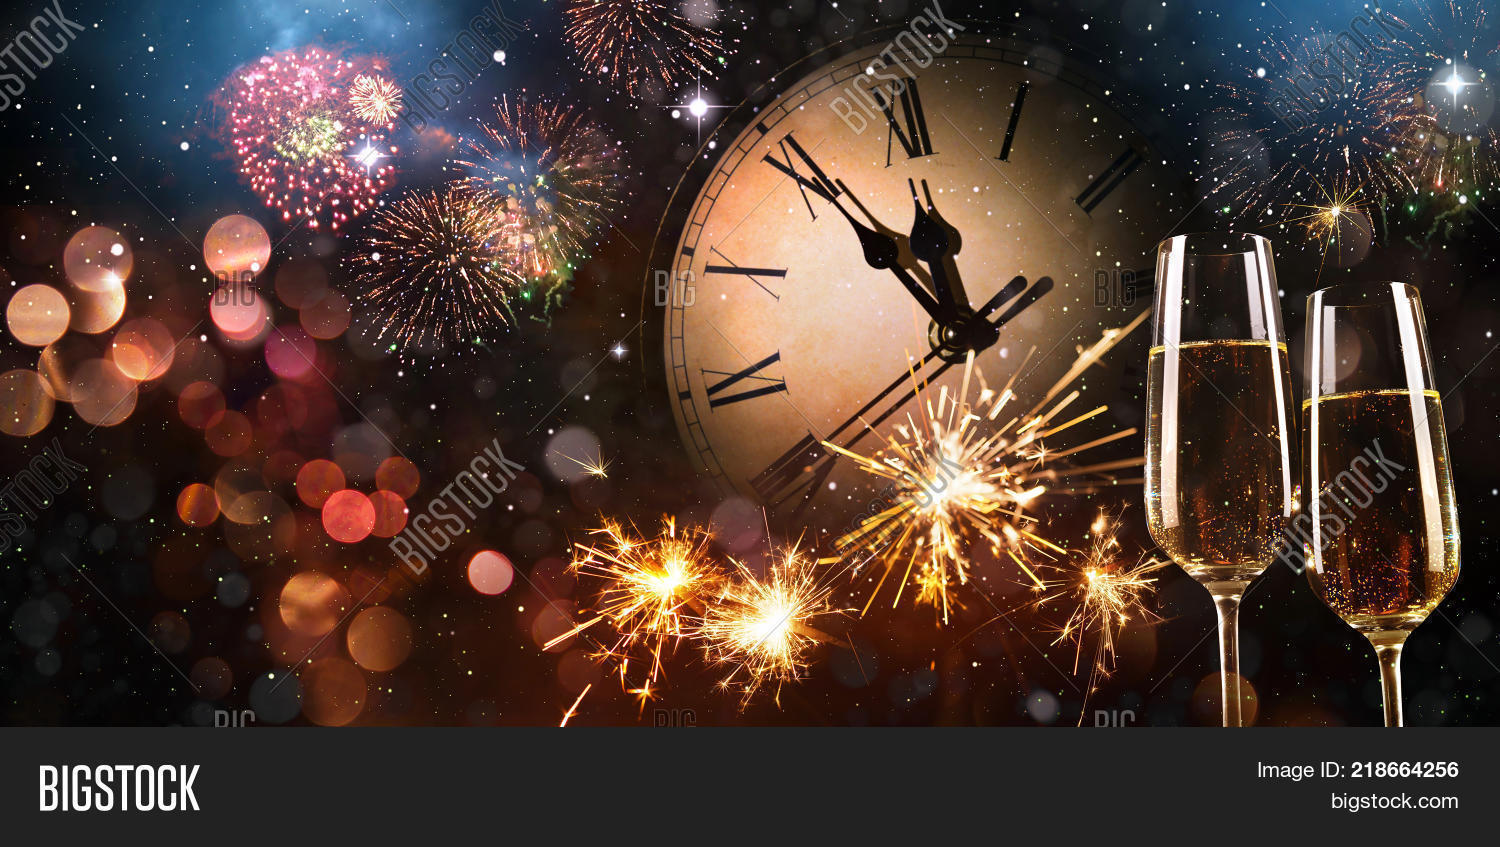 2018,anniversary,background,beverage,bokeh,bubbles,celebrate,celebration,champagne,change,cheers,christmas,clock,congratulations,copy space,countdown,drink,eve,evening,event,festive,festivity,final,firework,flute,glass,gold,greeting,happy,holiday,holidays,invitation,light,luxury,midnight,new,new year,new years eve,party,silvester,snow,sparkle,splash,stars,toast,twelve,wine,winter,year